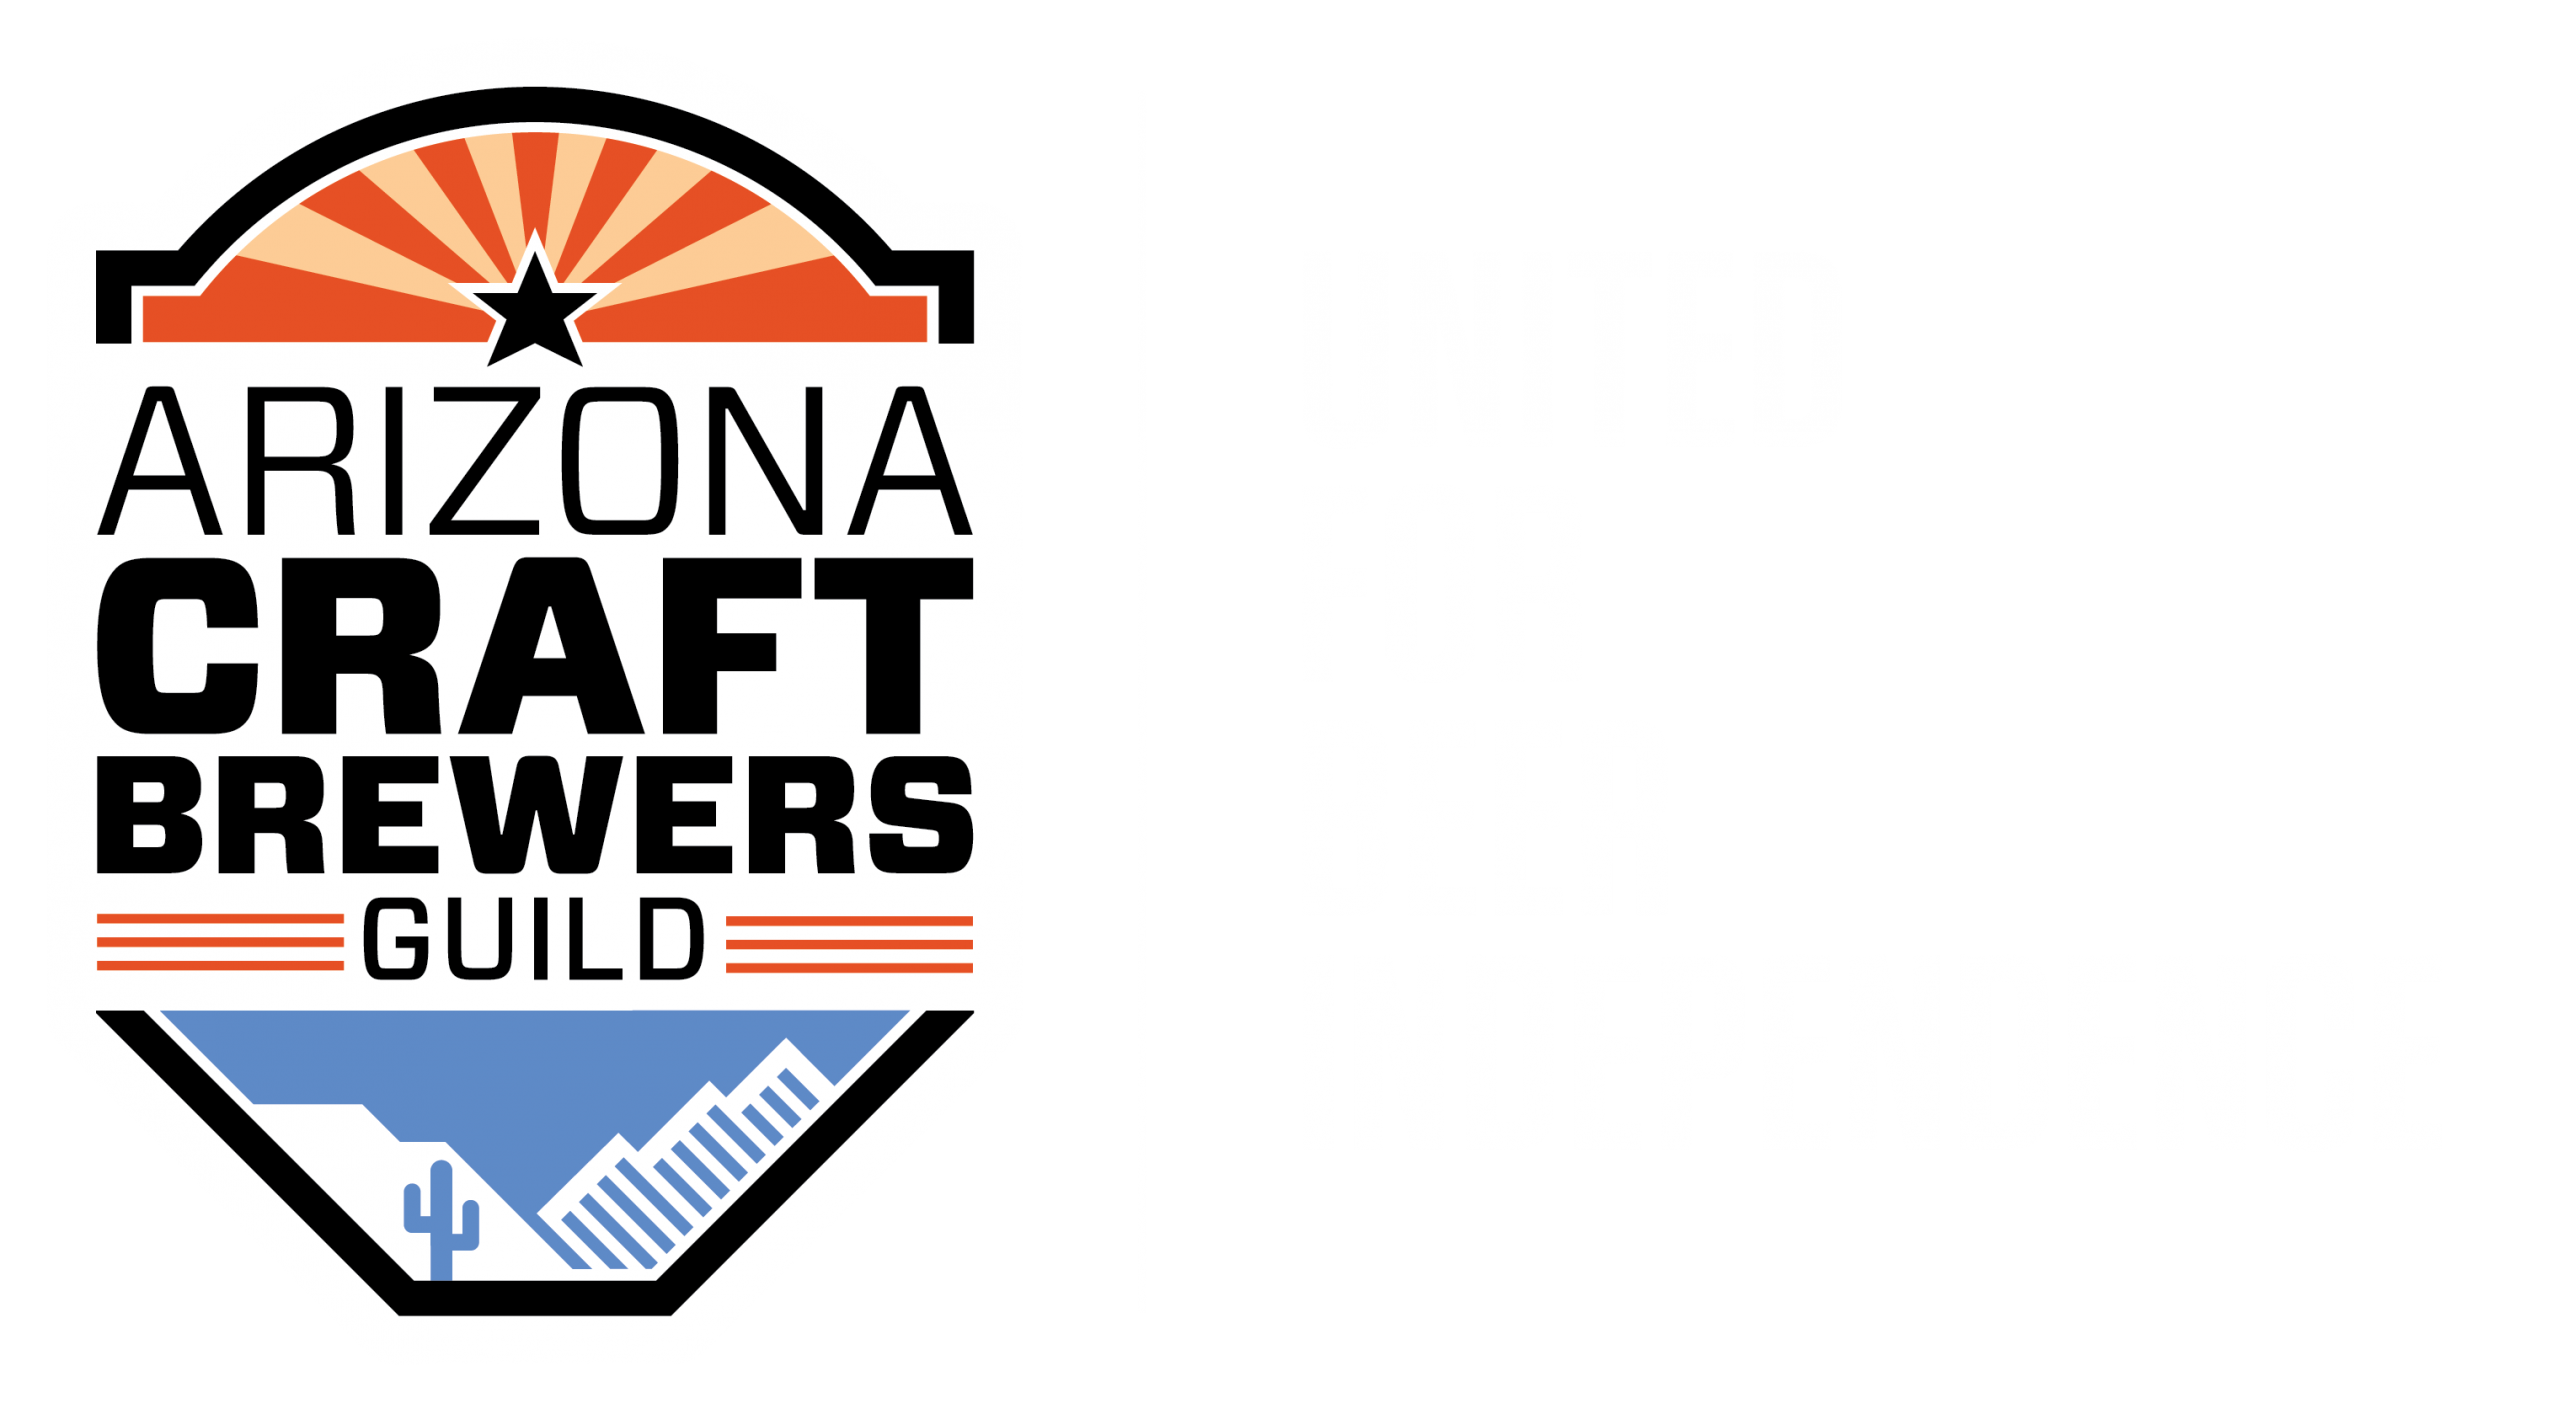 Desert Eagle Brewing Company | Arizona Craft Brewers Guild